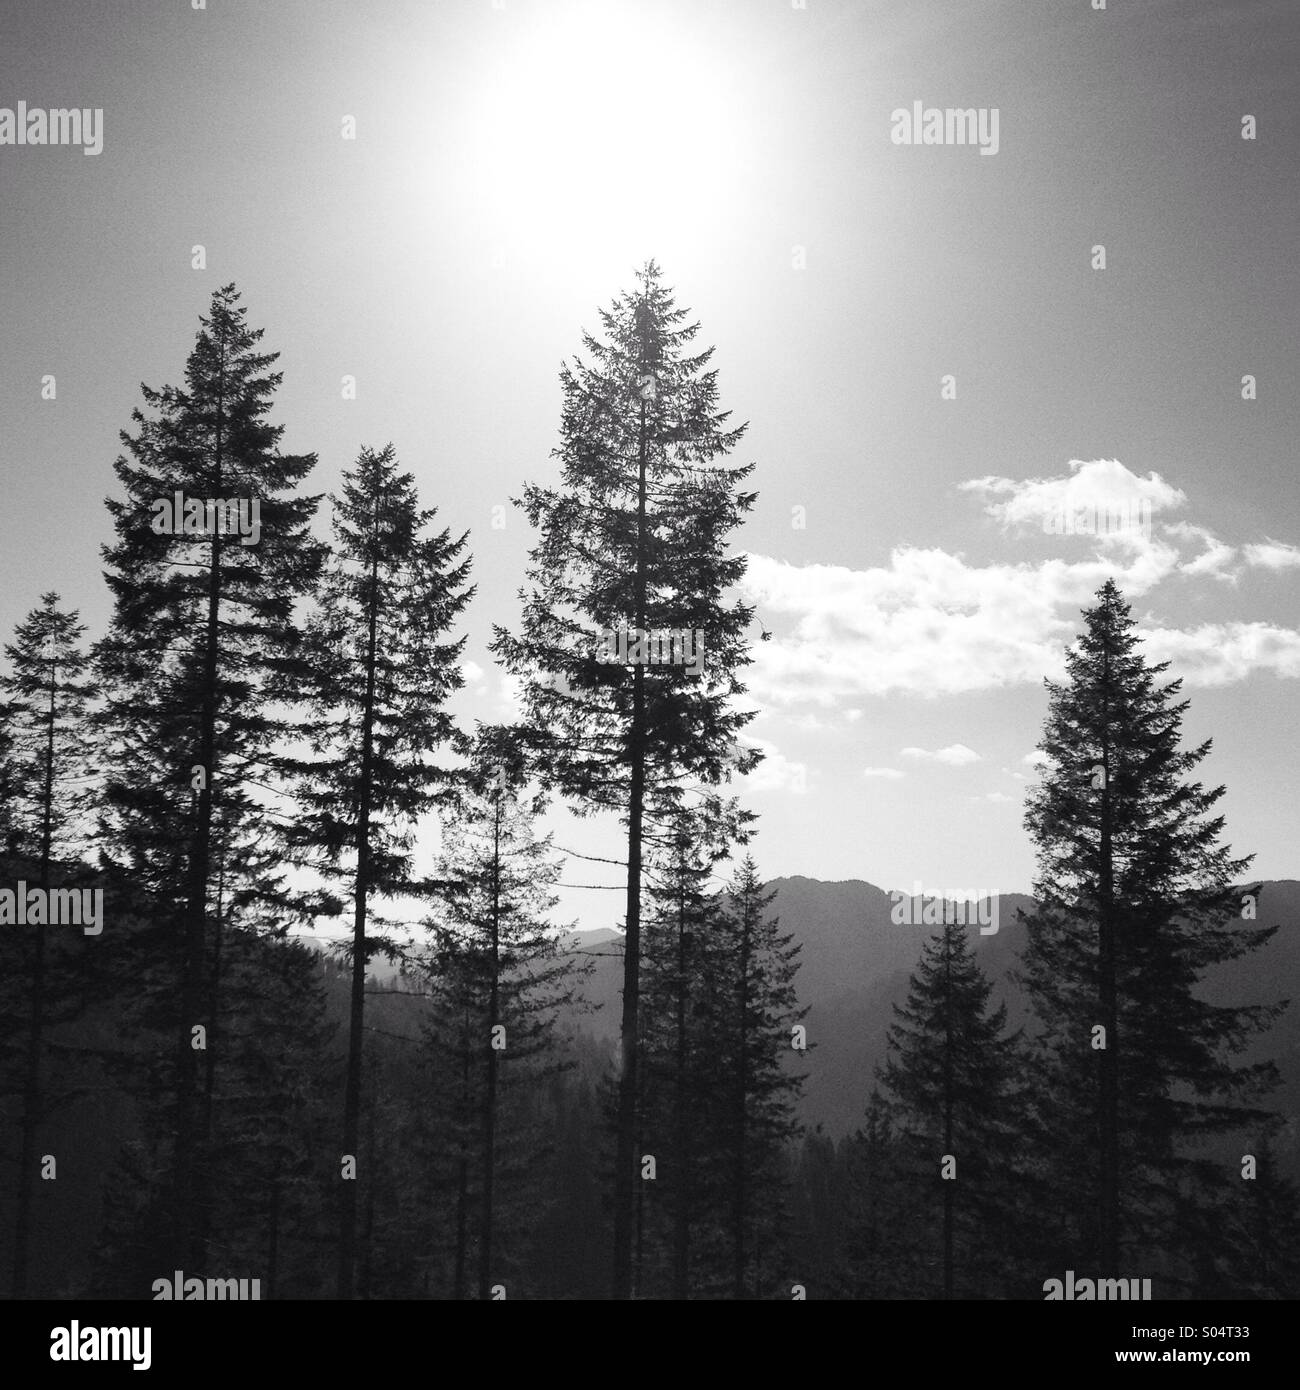 Black And White Pine Trees Stock Photo 309893335 Alamy